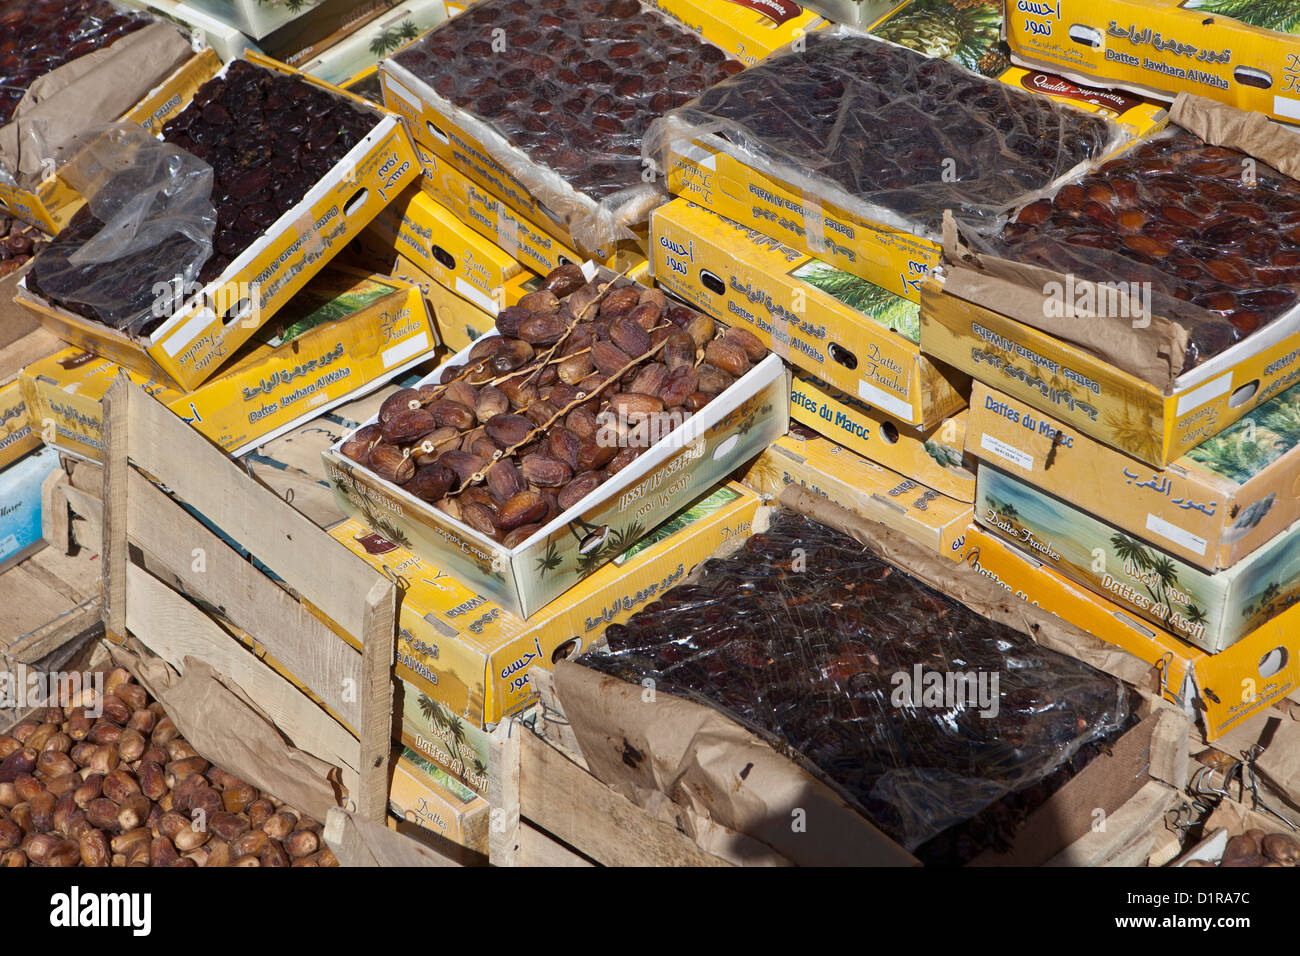 Morocco, Agdz, dates for sale on market. - Stock Image